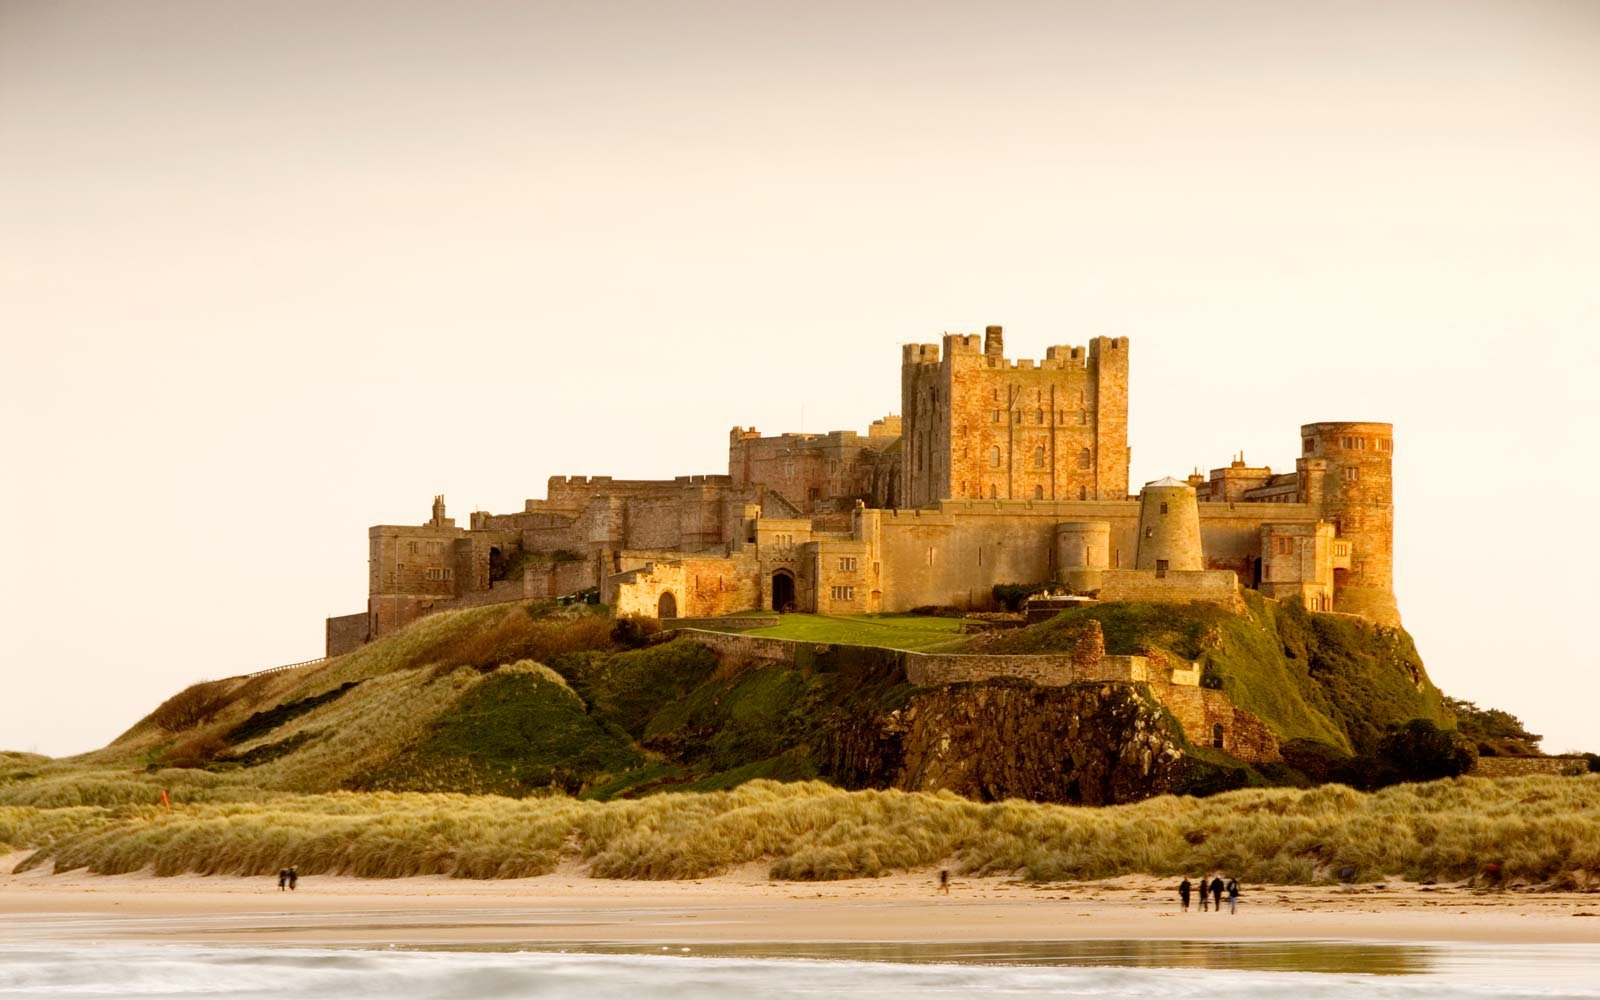 bamburgh castle - photo #38